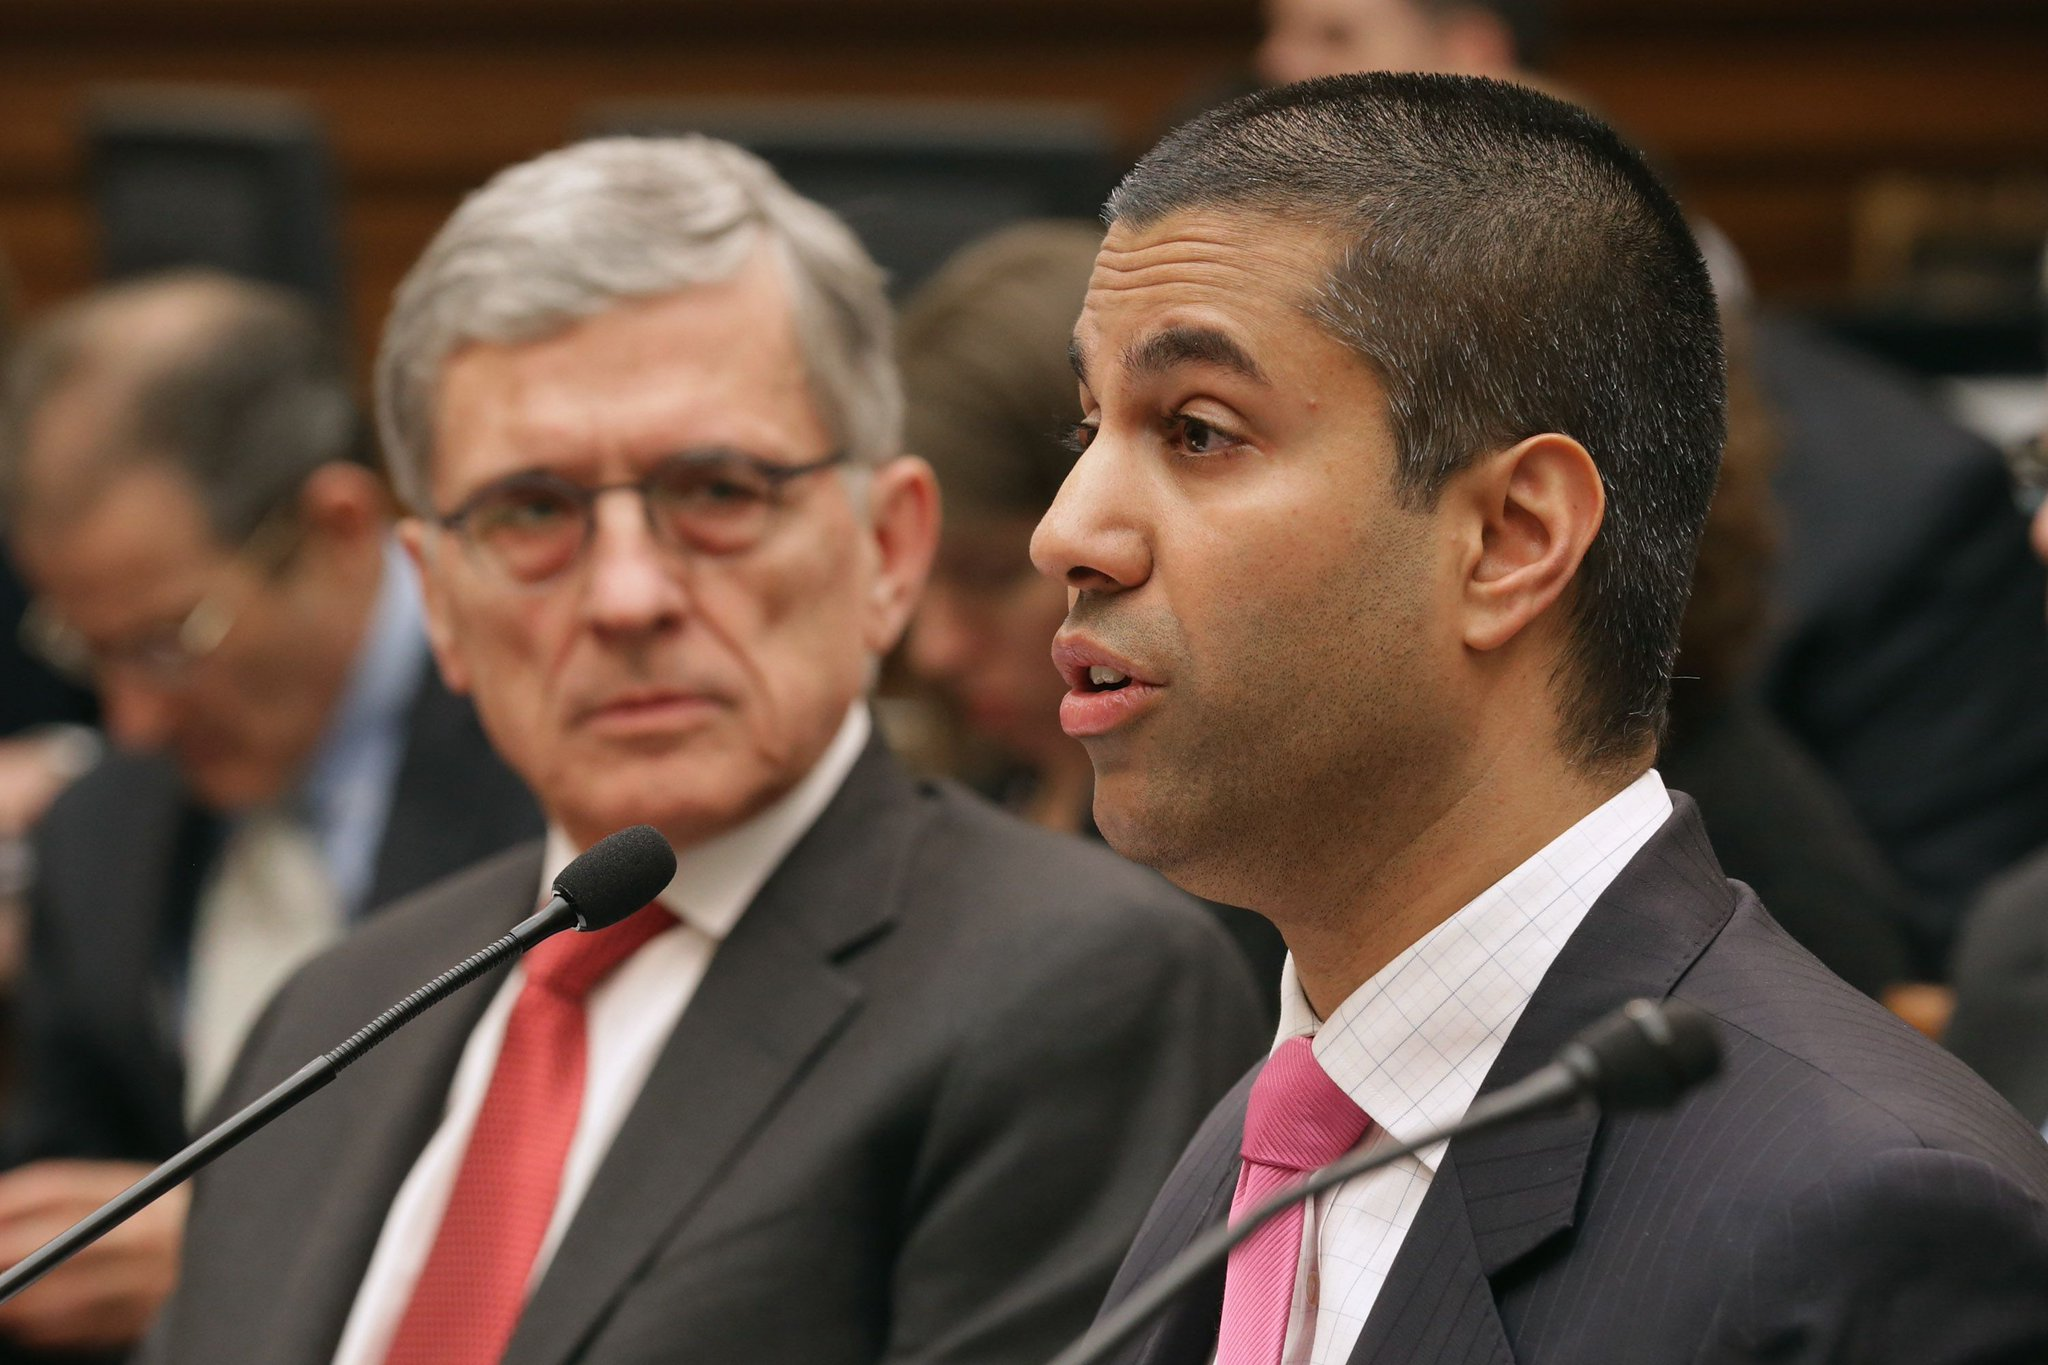 Ajit Pai's net neutrality plan is nonsense https://t.co/FP7UHb1jhD https://t.co/H89QFZZJ0K